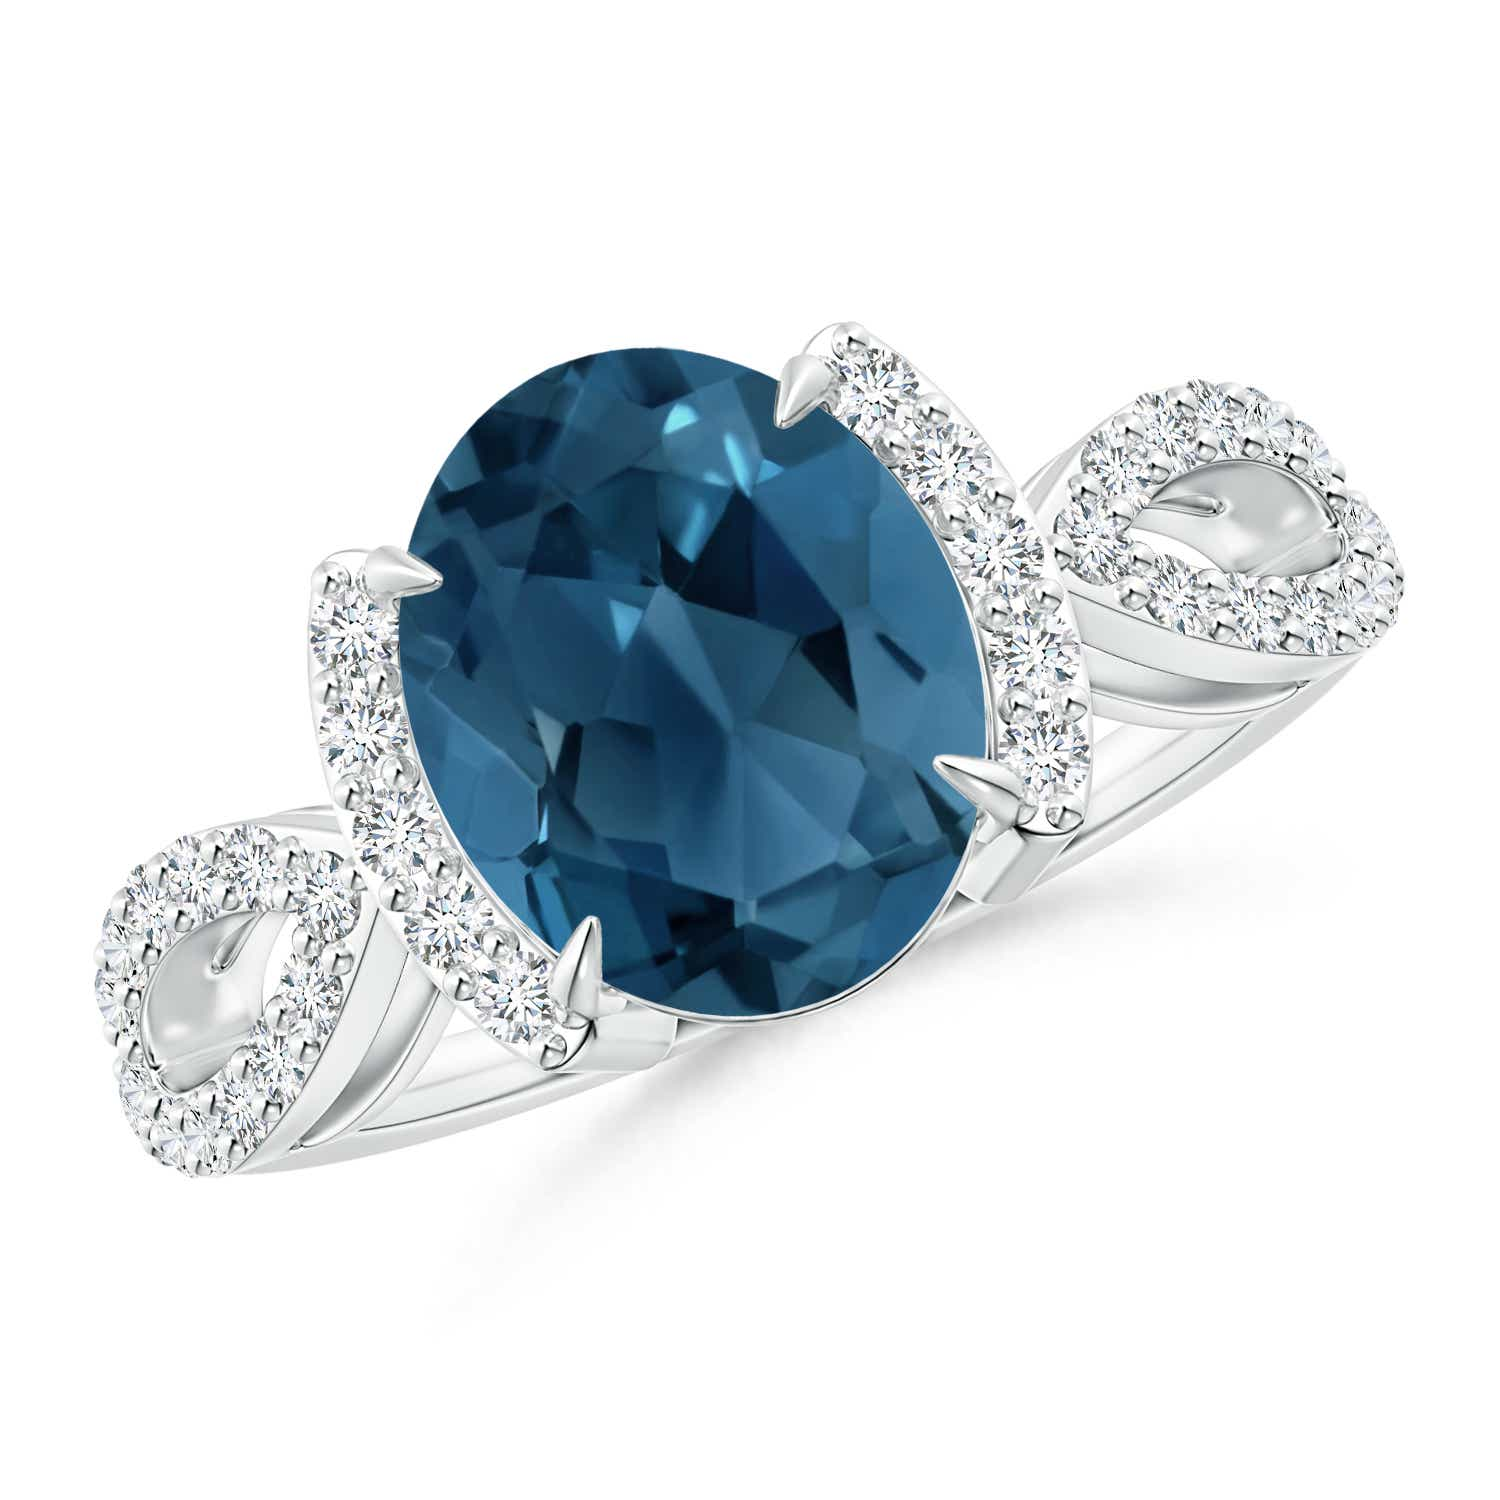 Angara London Blue Topaz Split Shank Ring with Diamond Half Halo ZEfWWs